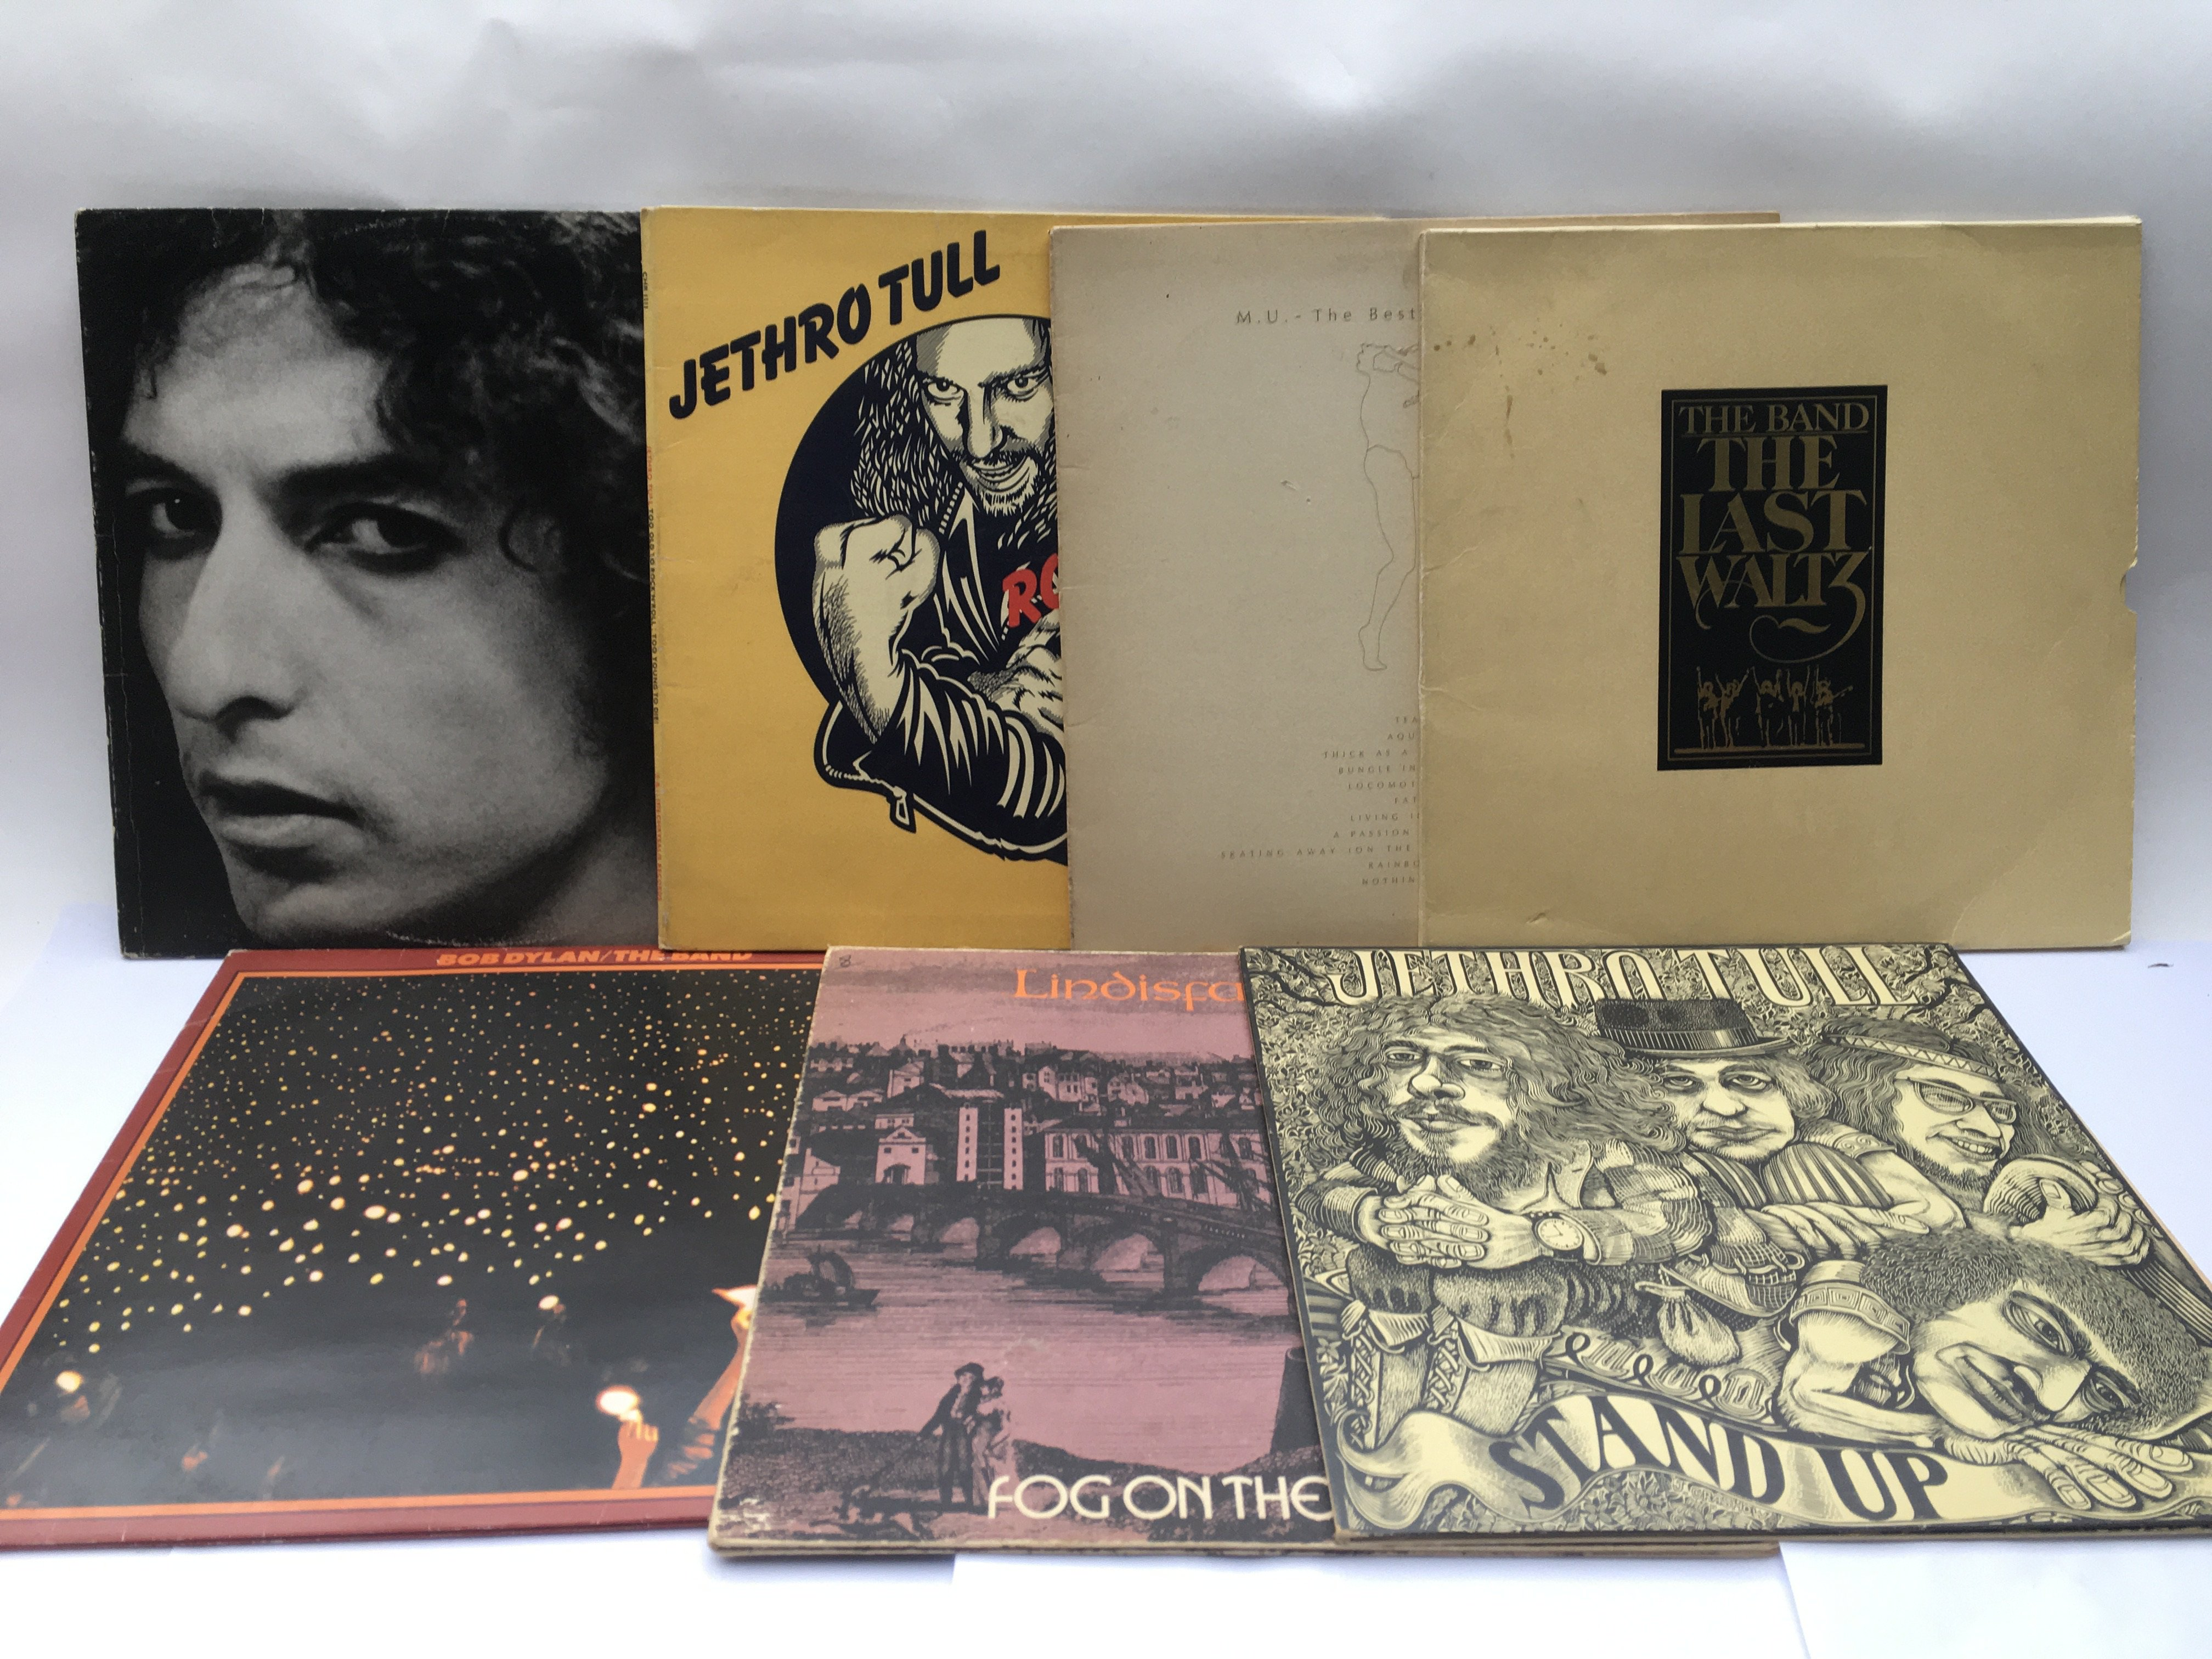 Seven LPs by Bob Dylan, The Band, Jethro Tull and